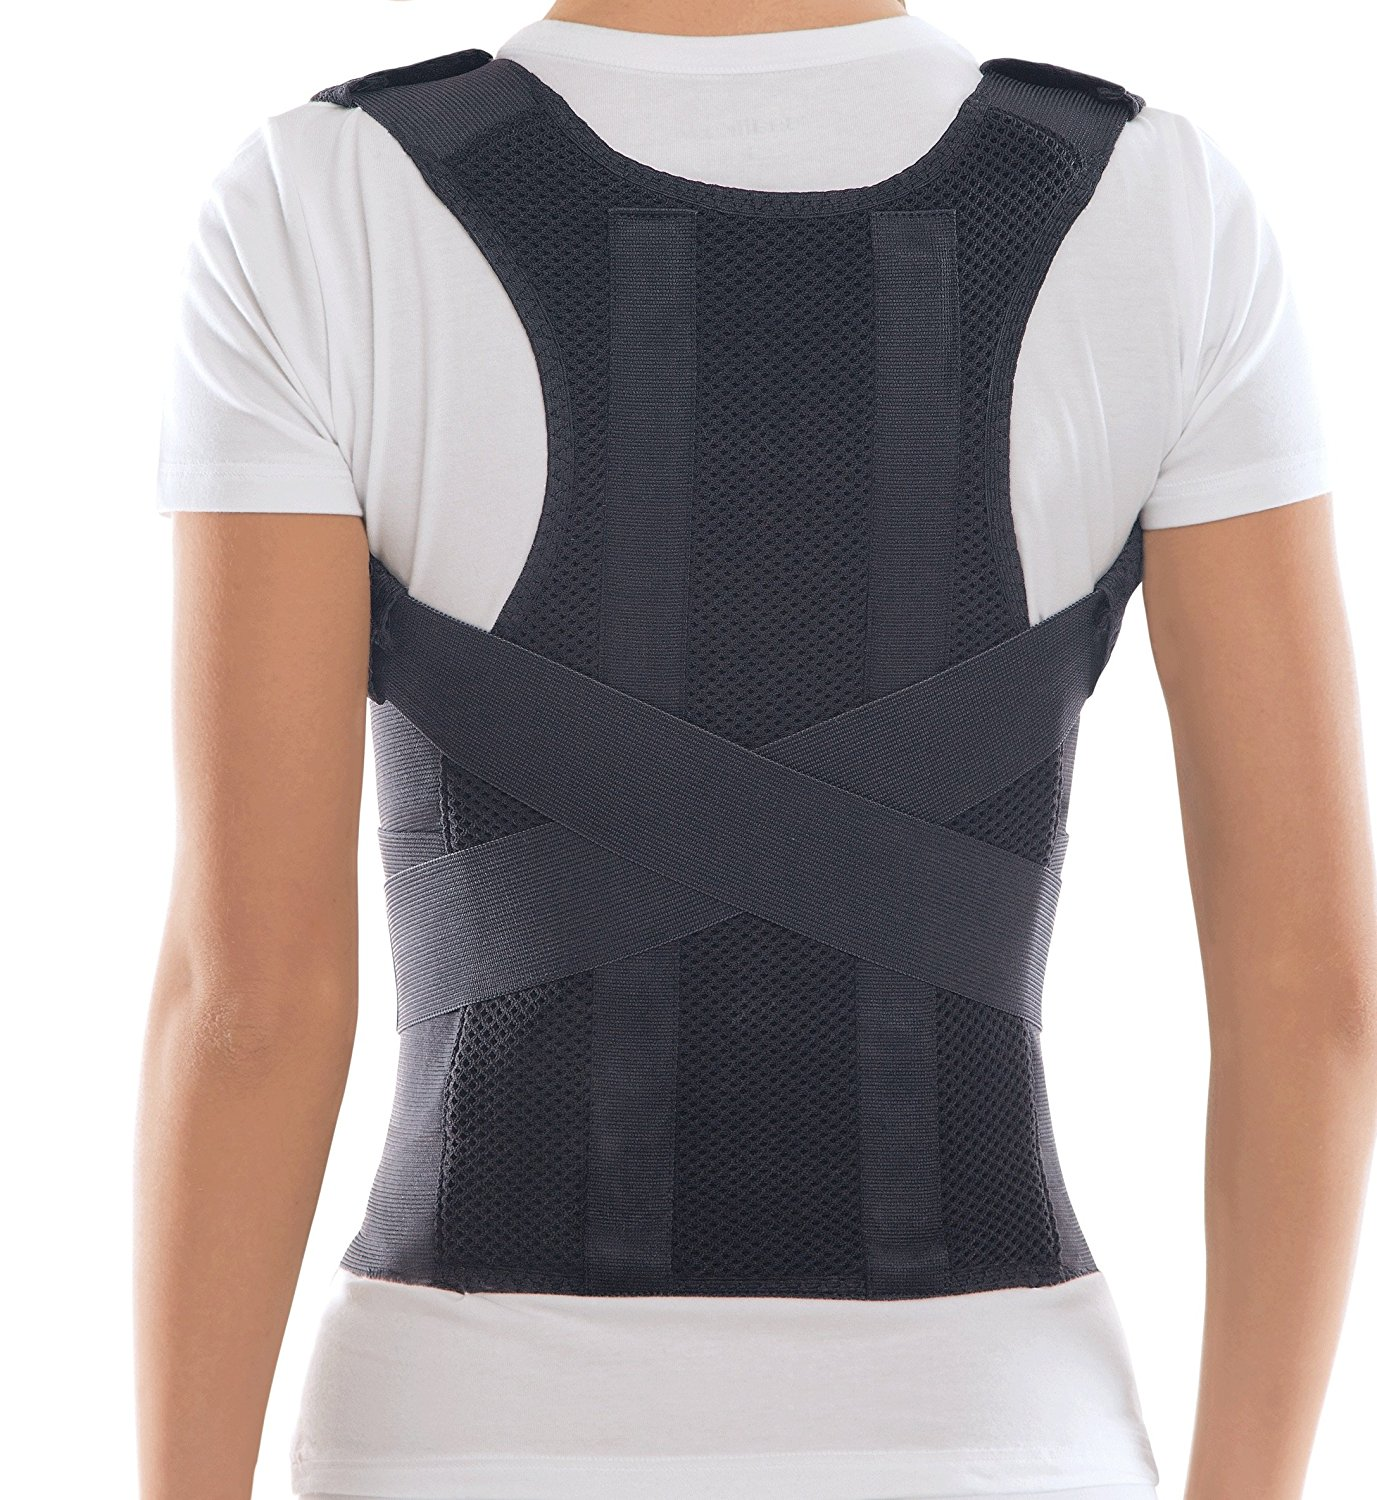 Posture Corrective Braces – Why You Need Them